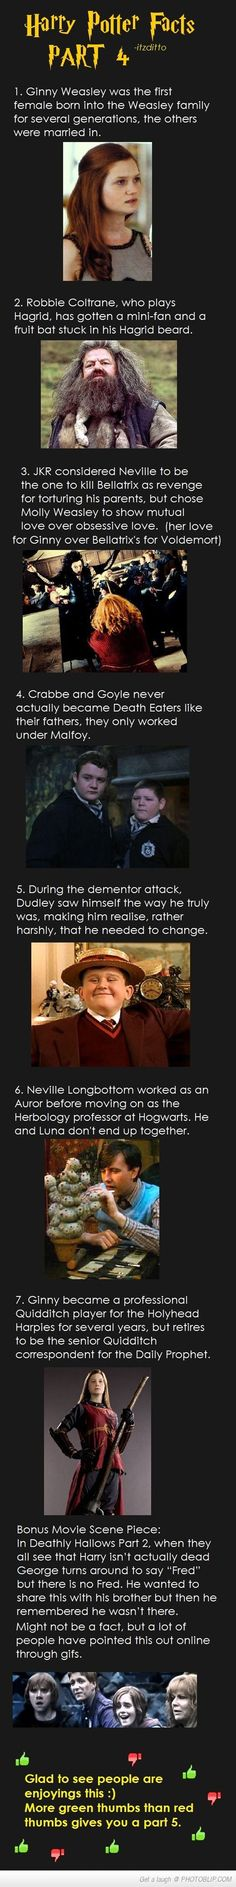 Harry Potter Facts Part Four